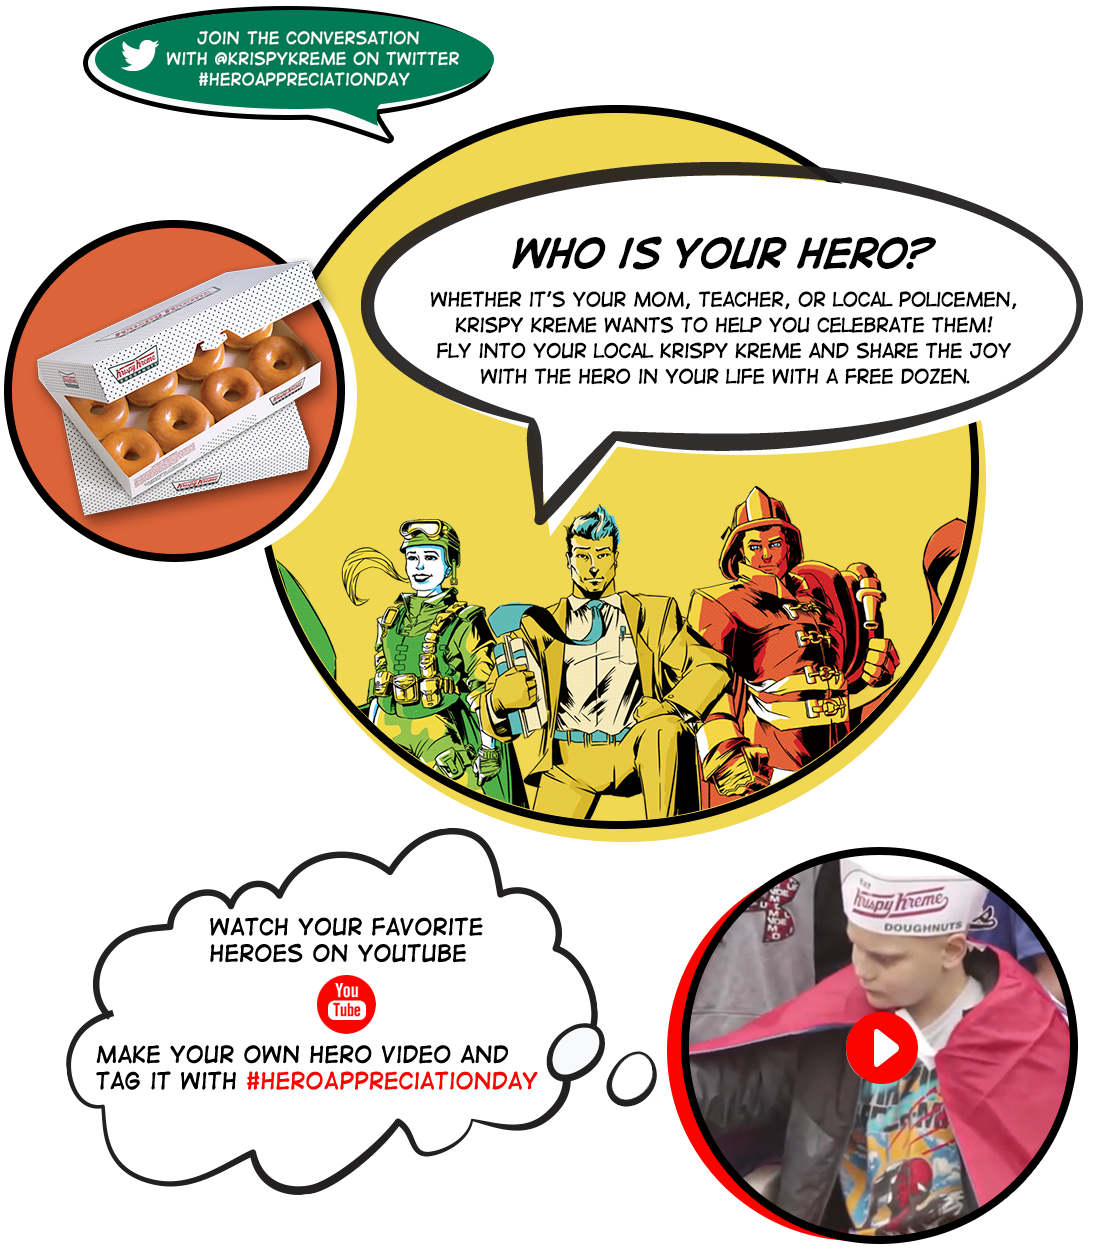 April 28th is Hero Appreciation Day. Buy a dozen doughnuts at participating Krispy Kreme locations and get a dozen free to give to your hero. Share your hero videos on YouTube with the hashtag heroappreciationday.